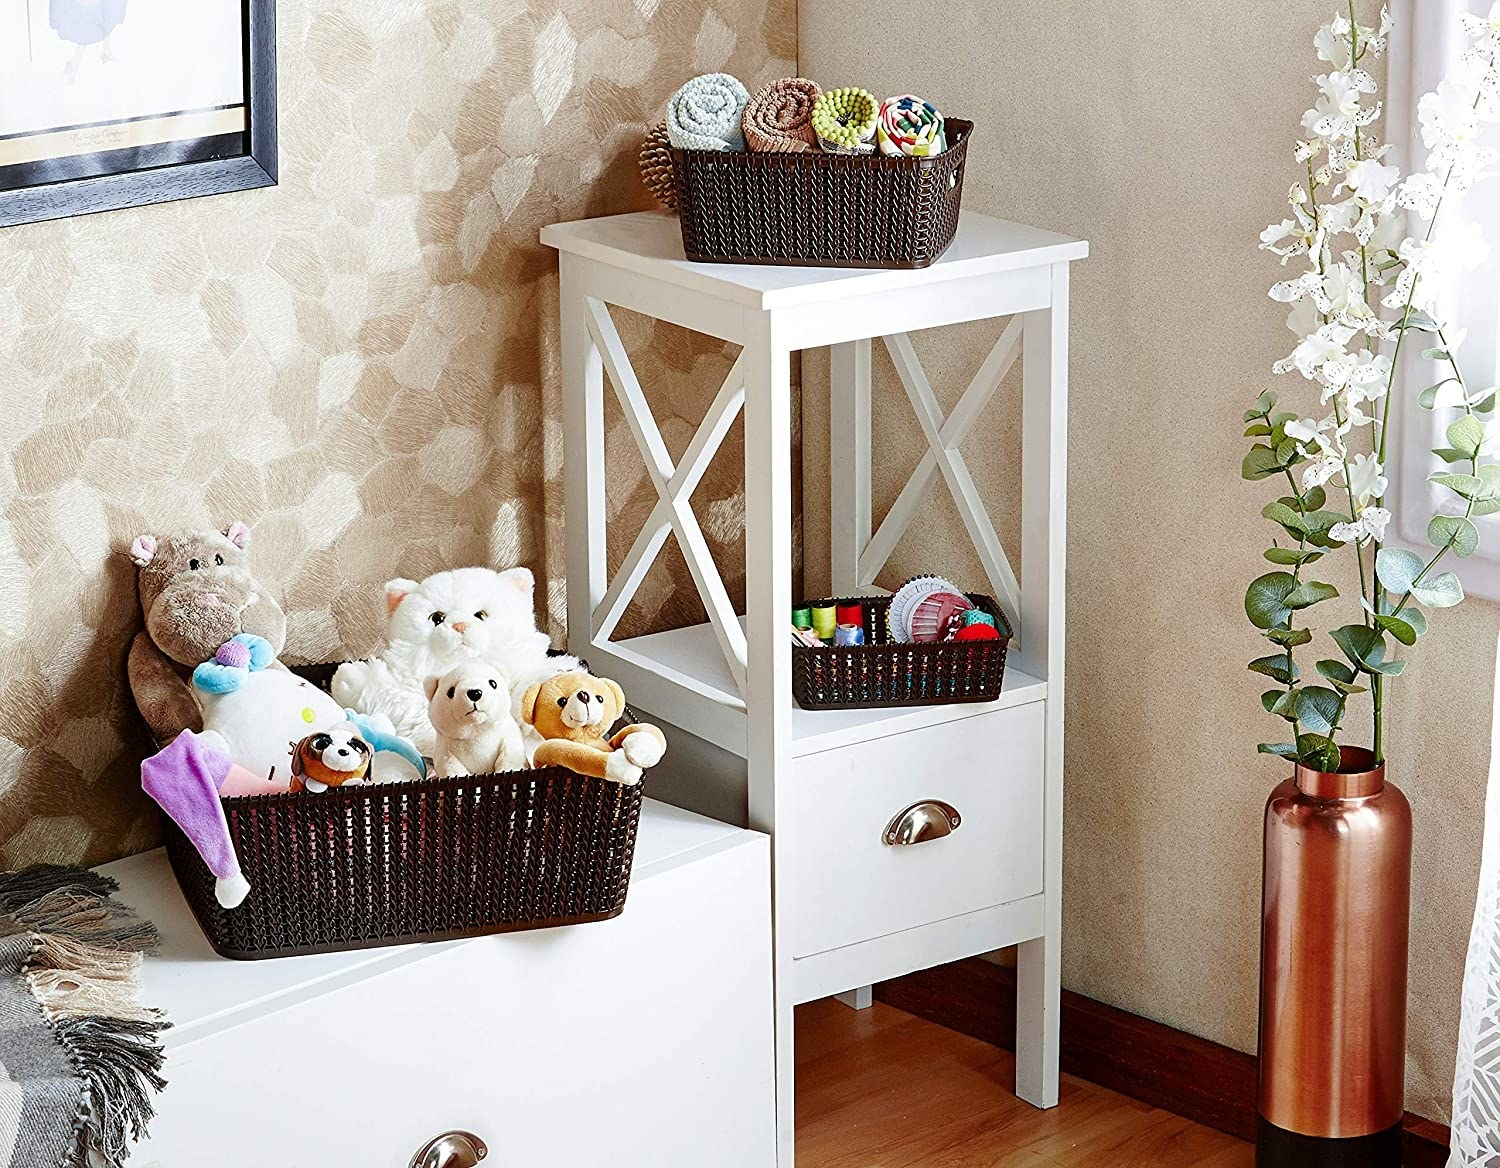 A set of brown storage baskets on a table